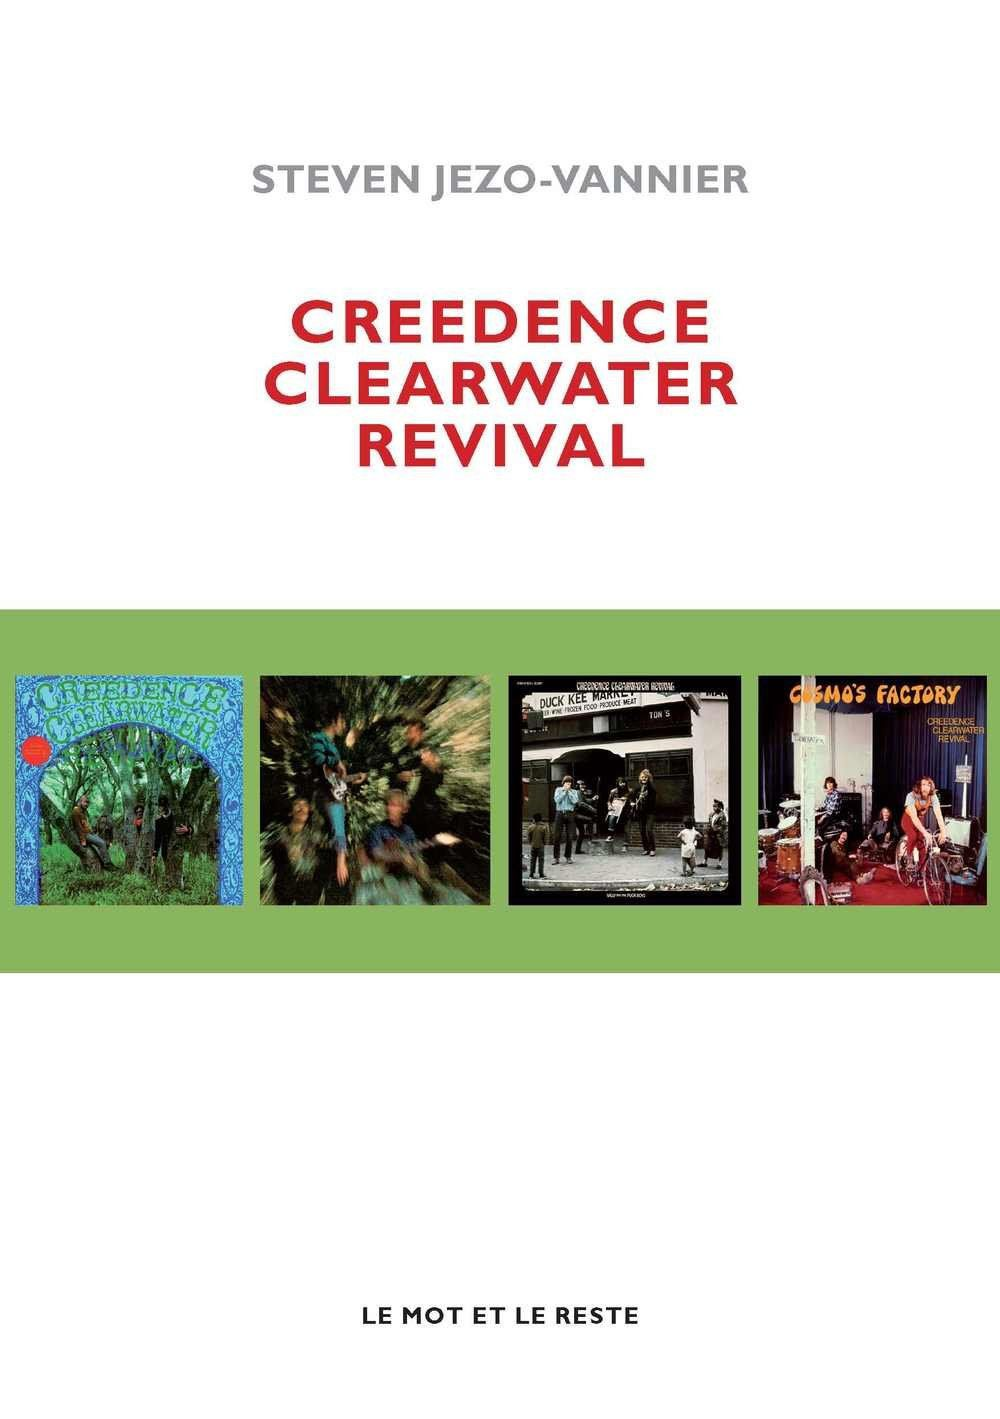 Steven Jezo-Vannier Creedence Clearwater Revival